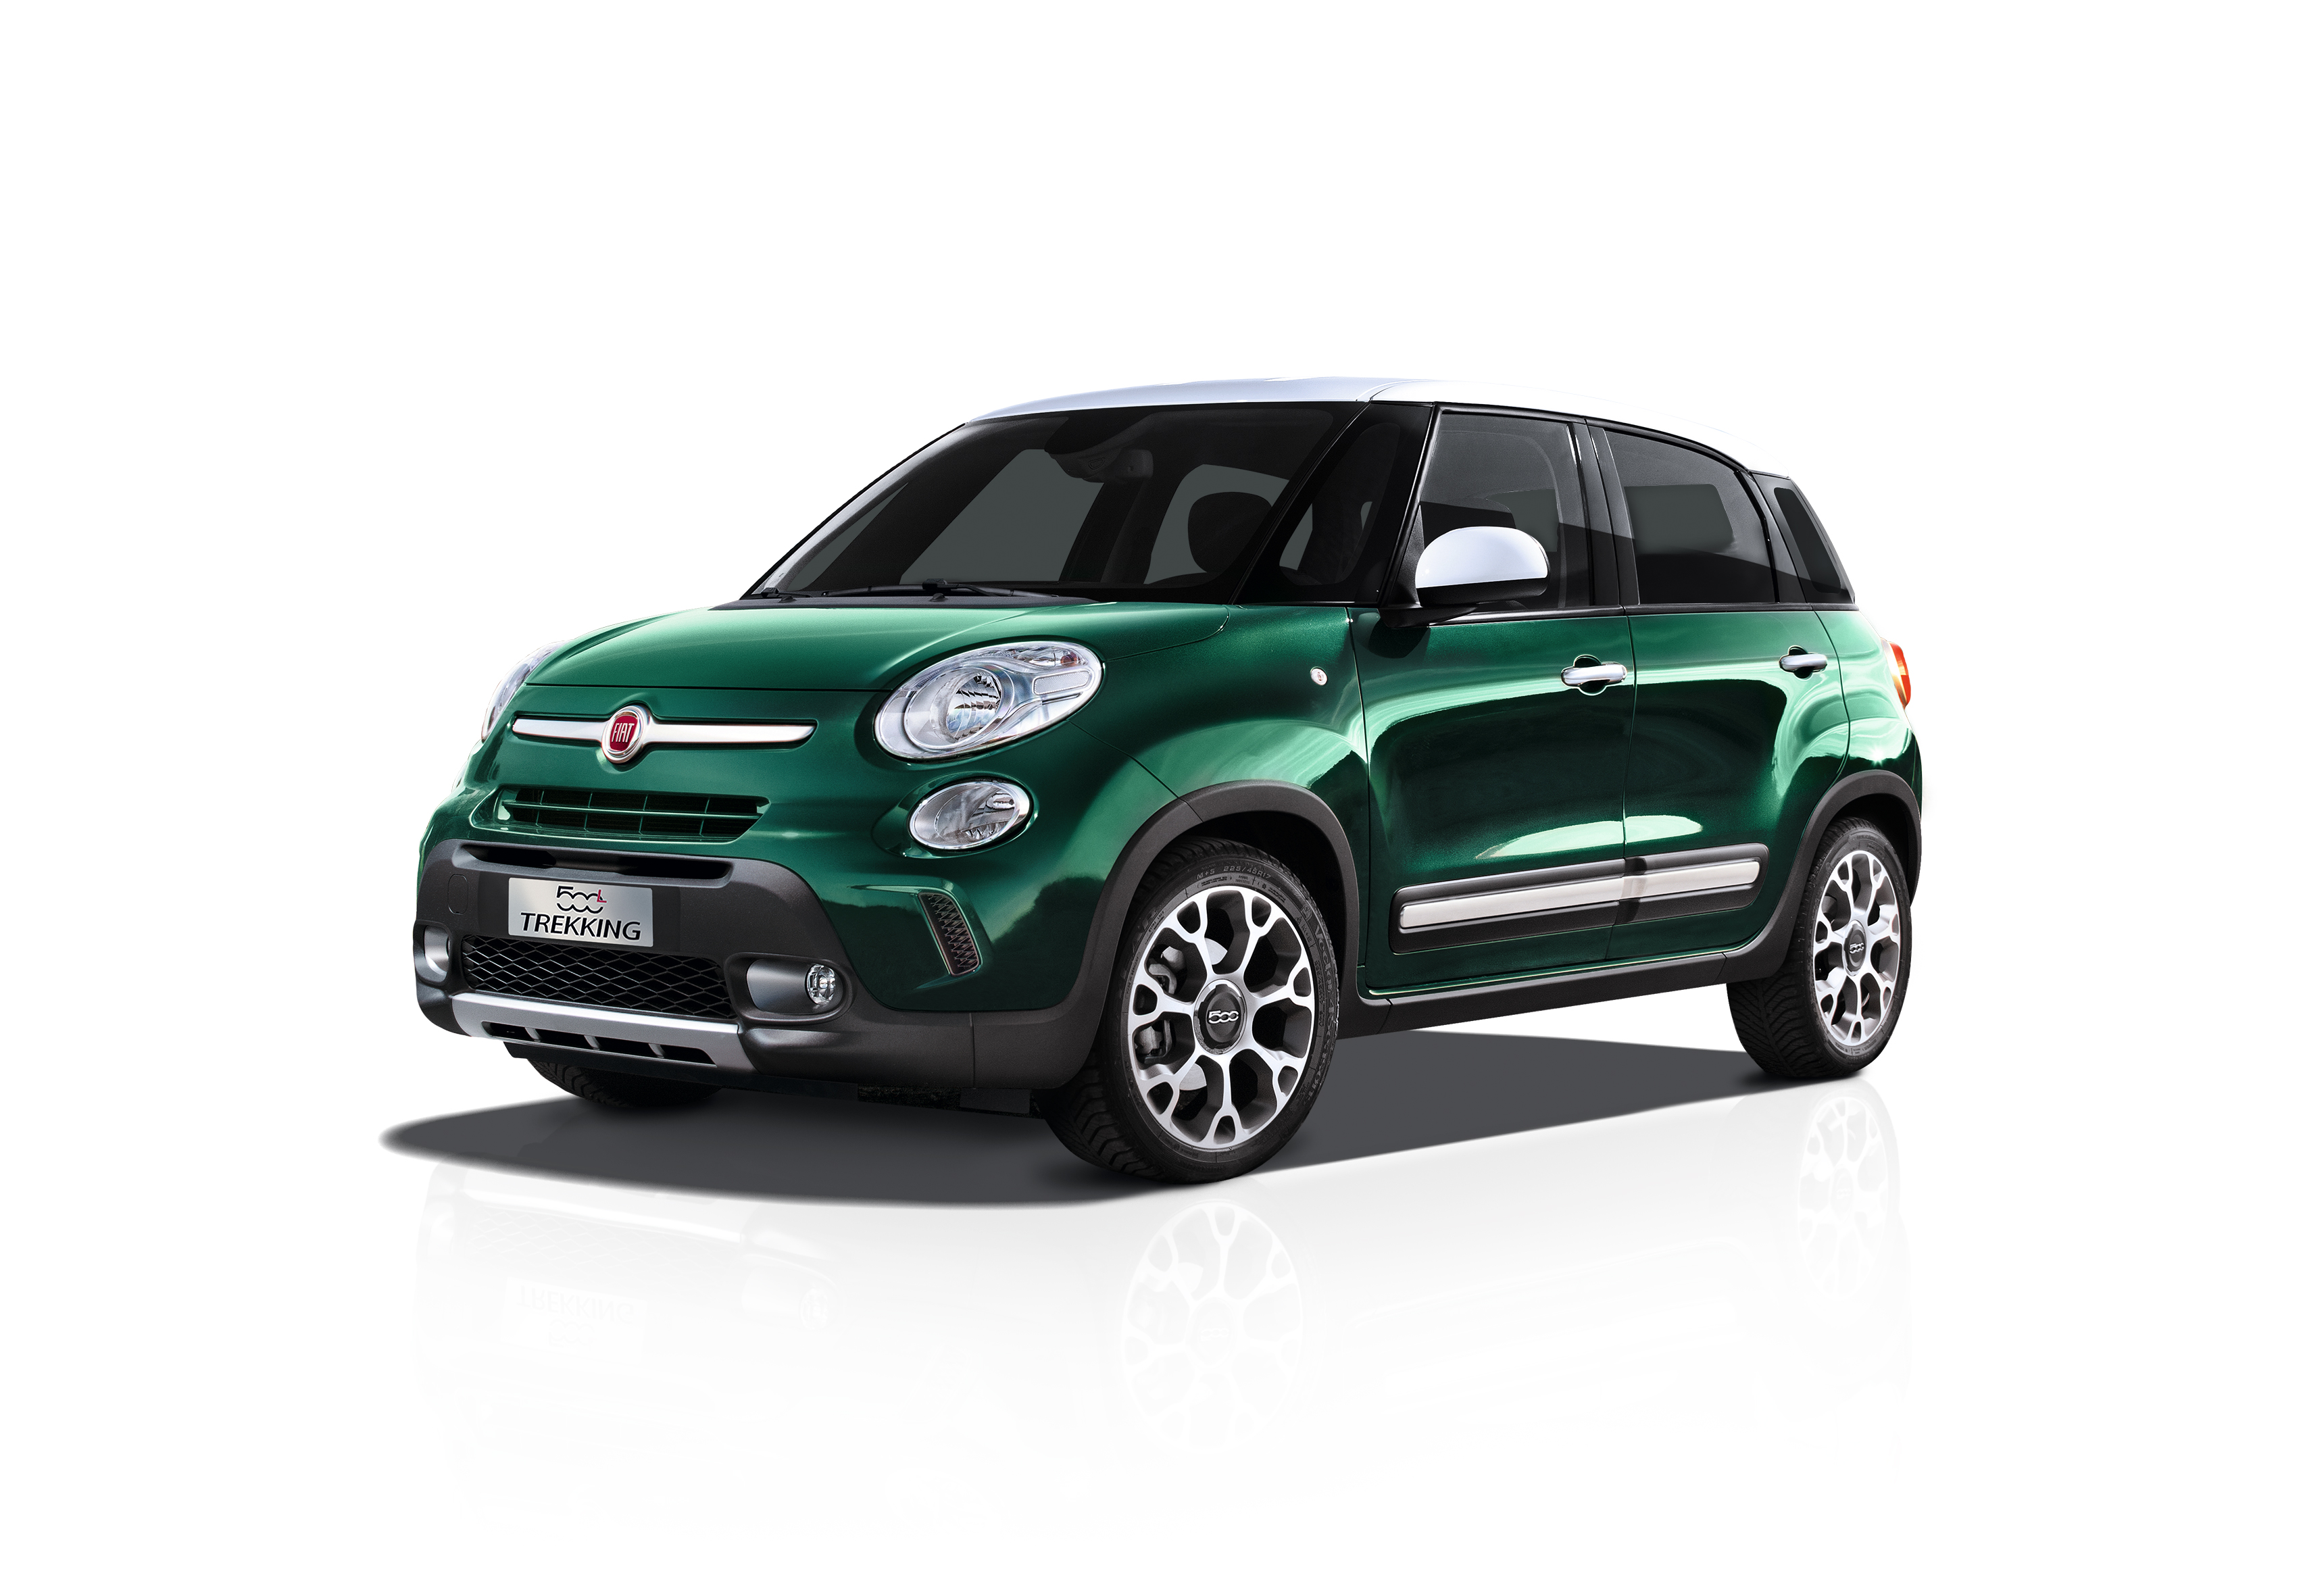 das fiat 500 l trekking sondermodell rock n road edition schnell entschlossene k ufer. Black Bedroom Furniture Sets. Home Design Ideas